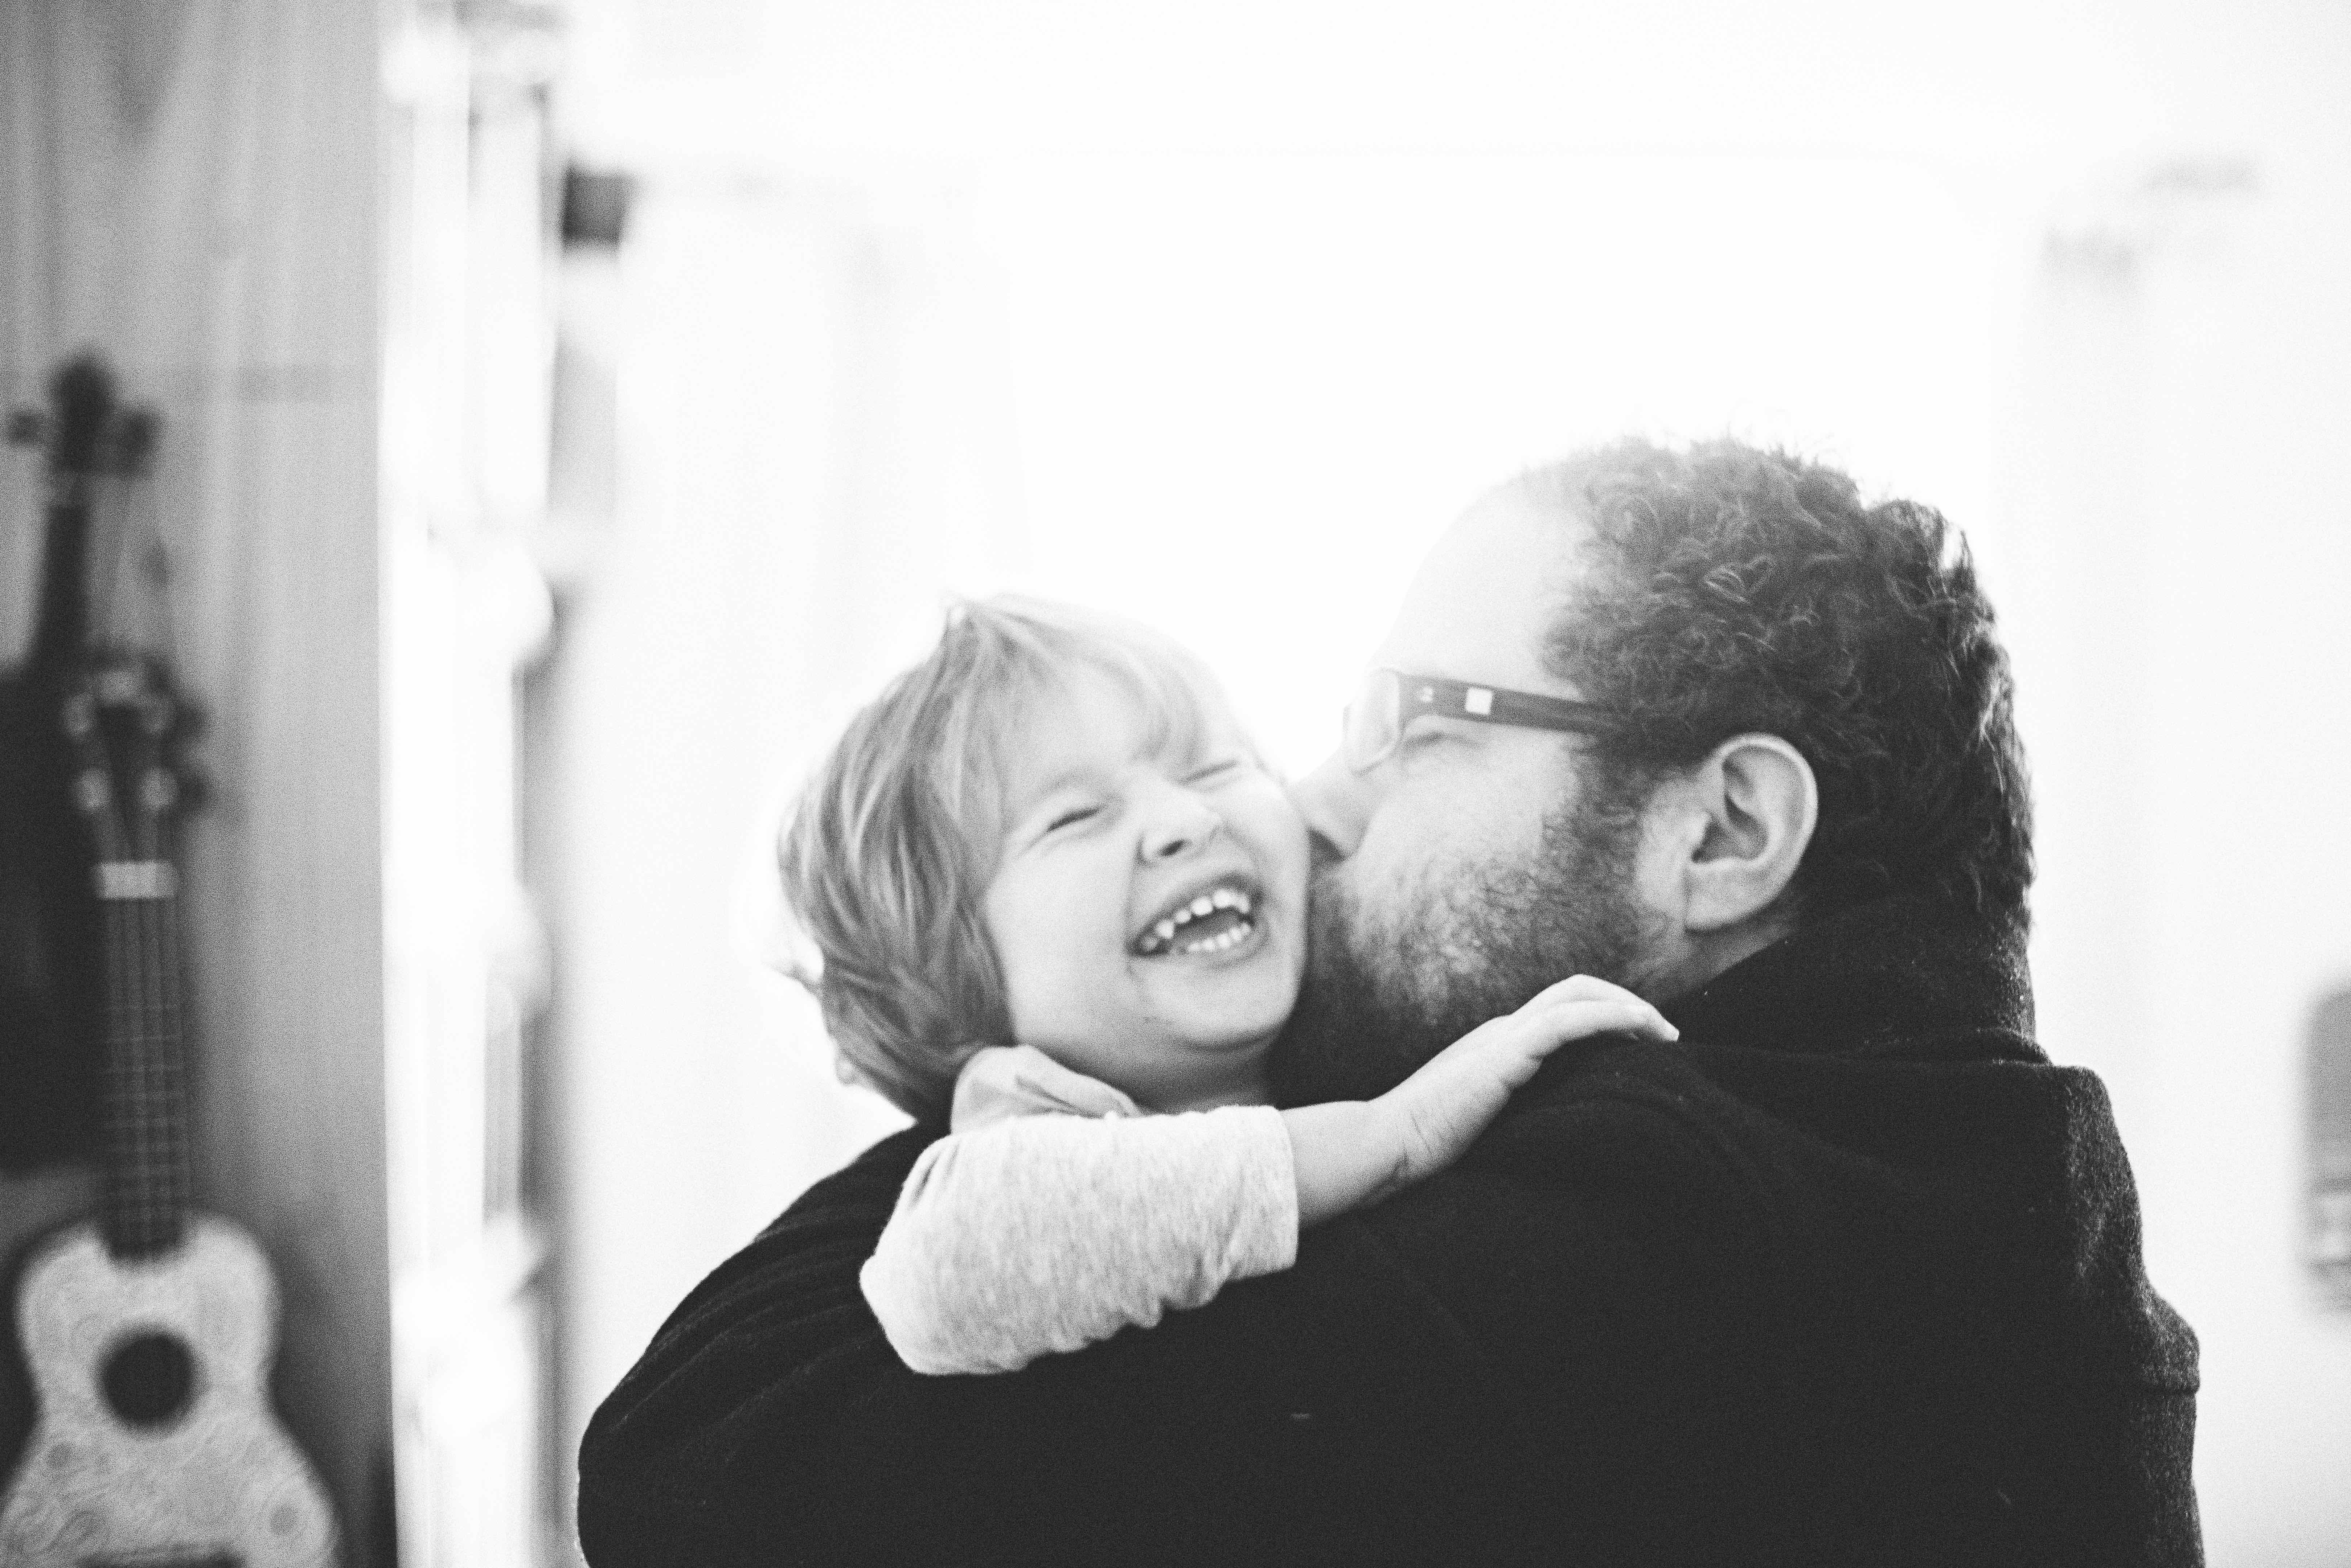 Black and white photo of father kissing little girl on cheek while she laughs